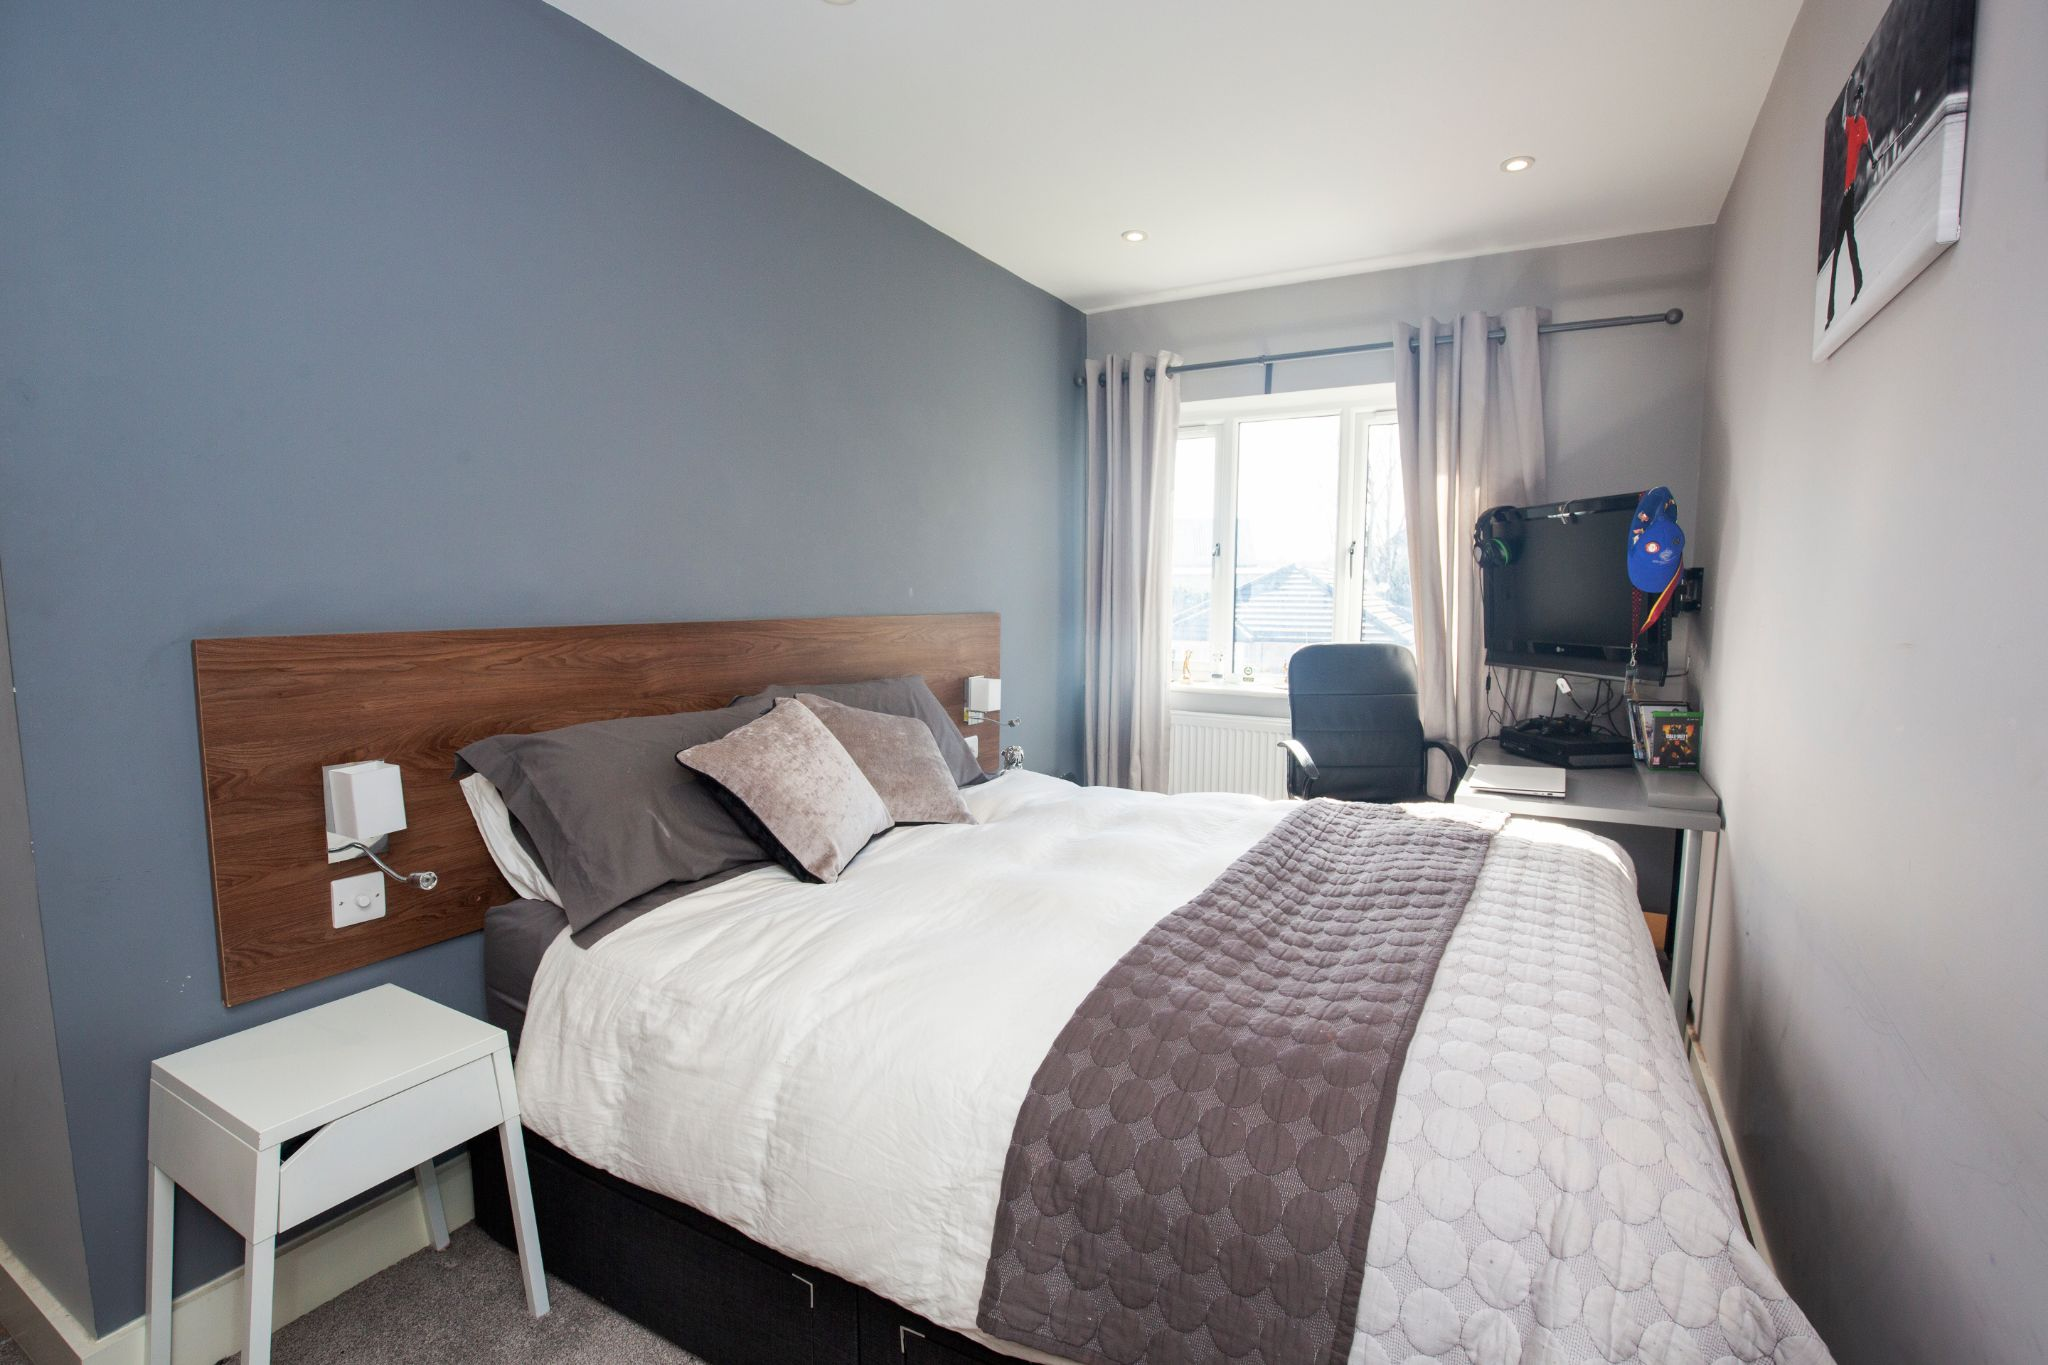 4 bedroom detached house For Sale in Brighouse - Bedroom 2